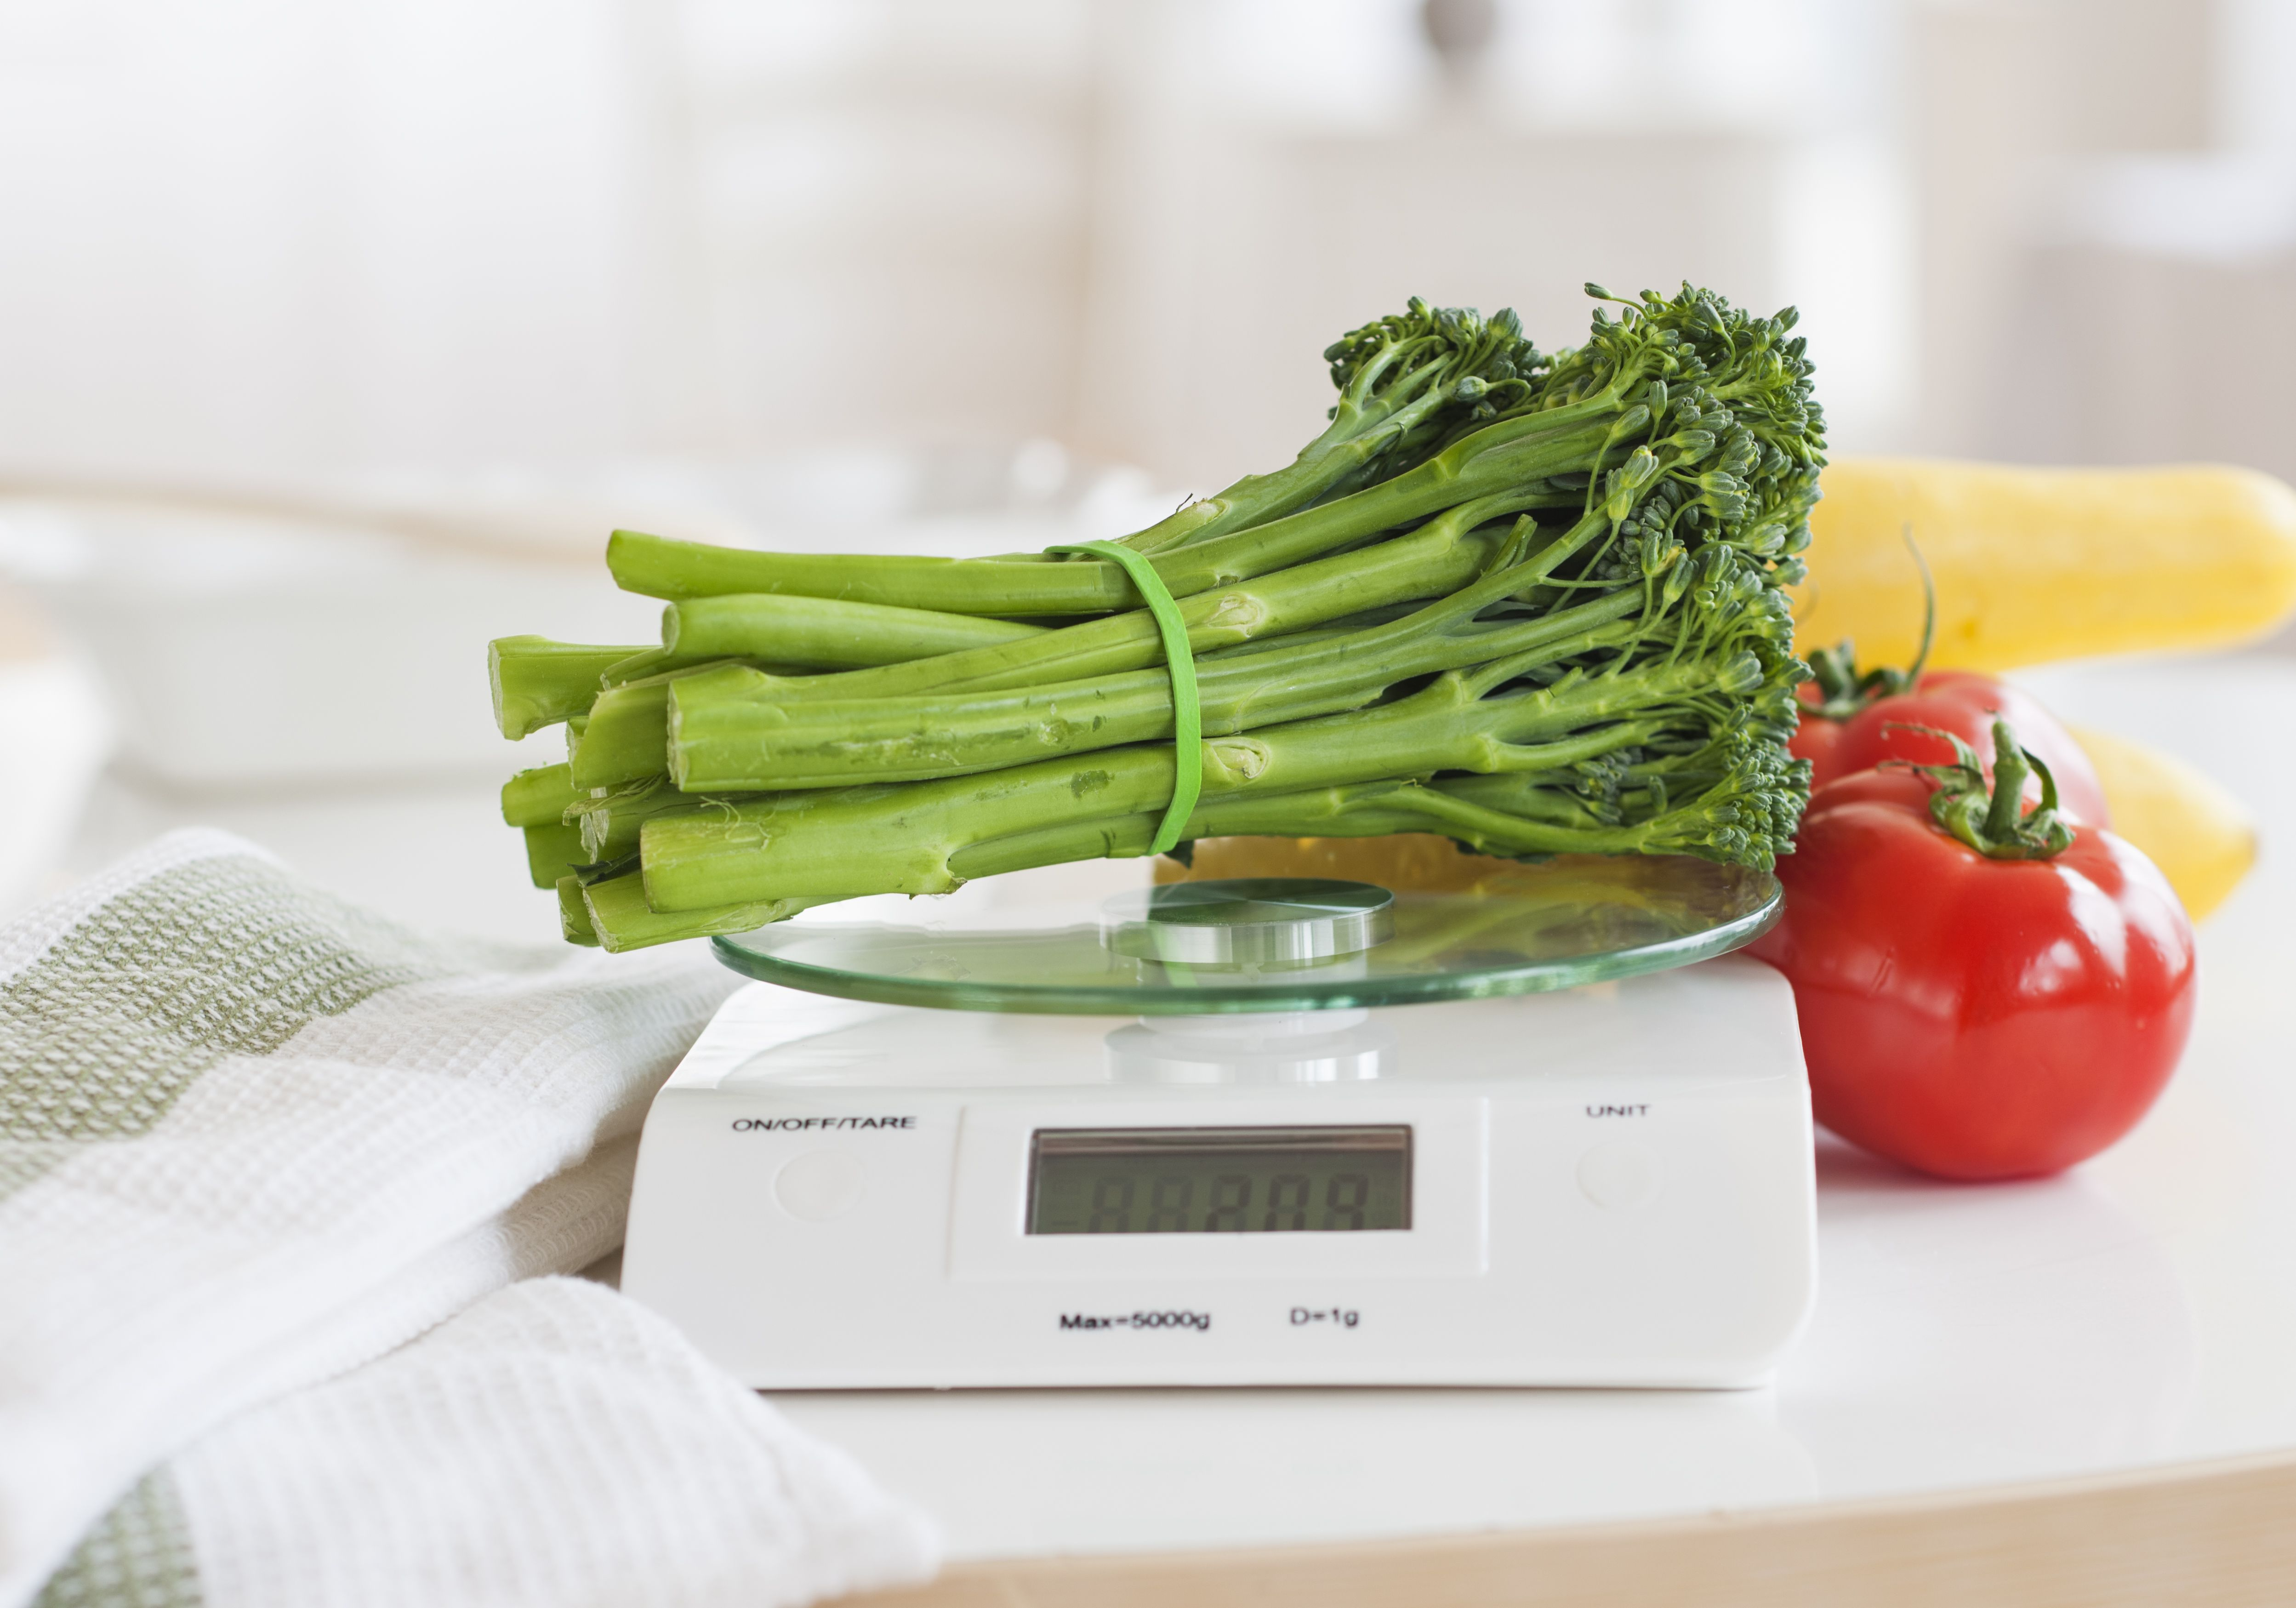 10 Best Food Scales You Can Order Online